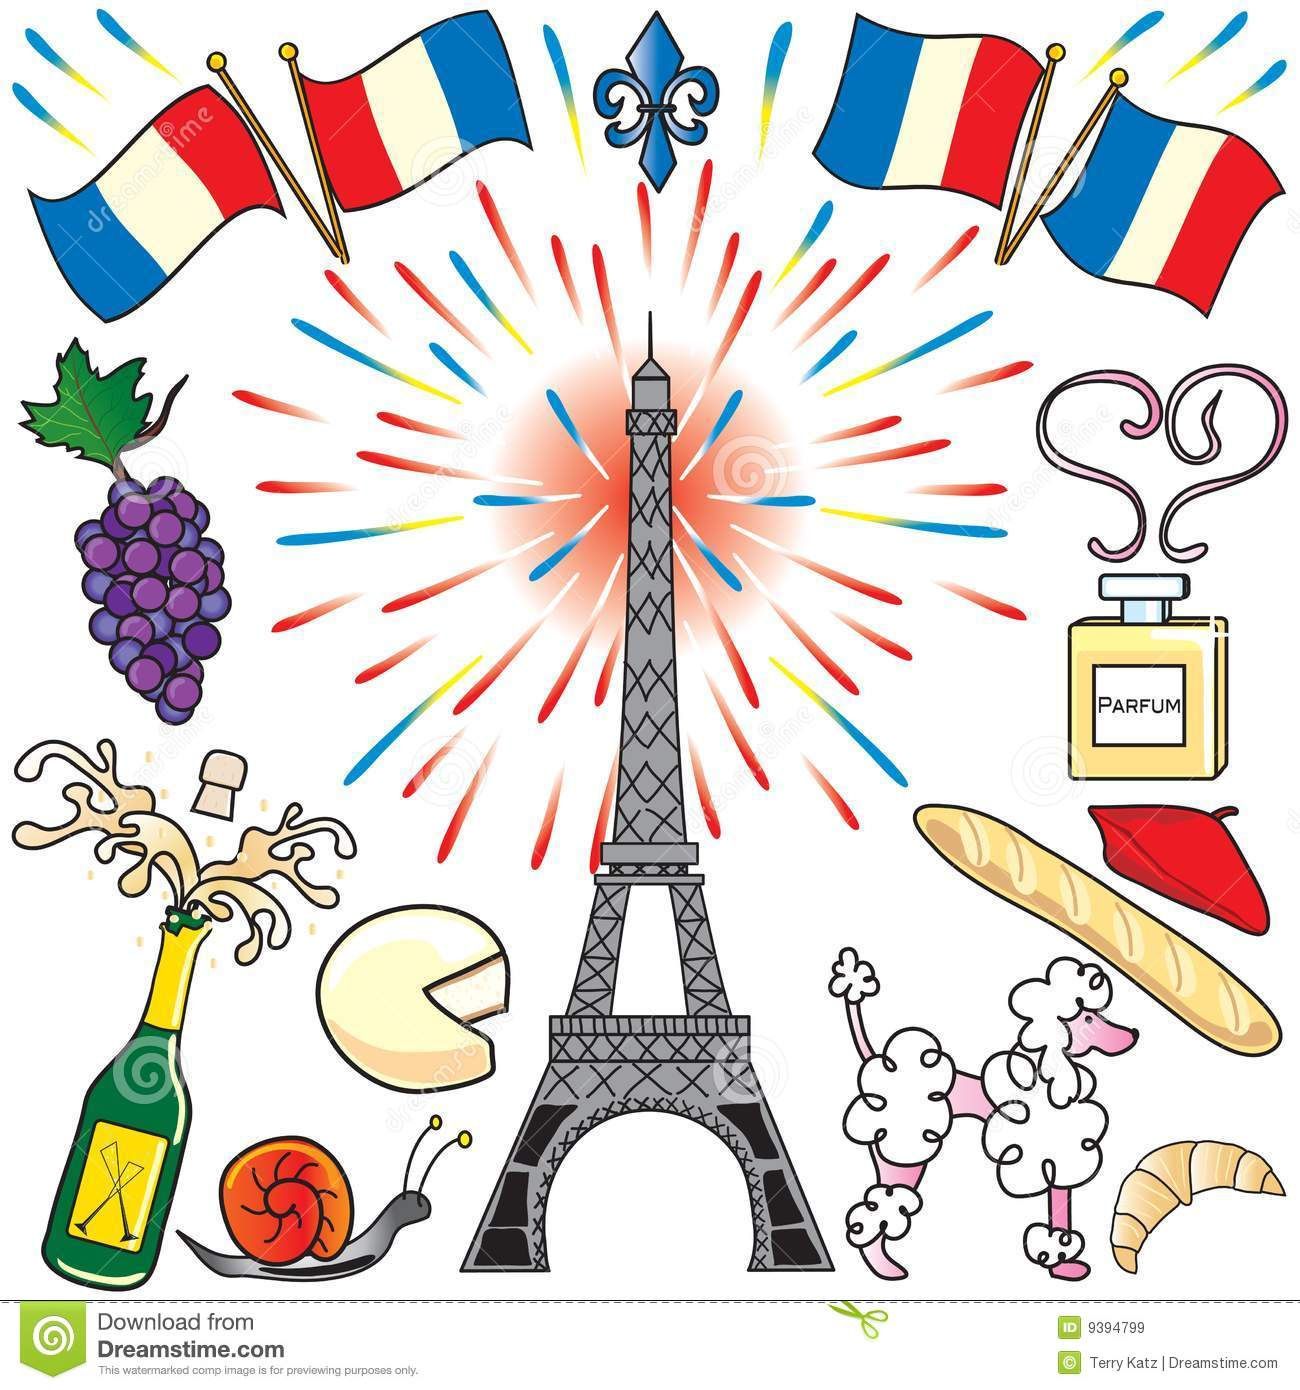 France clipart #12, Download drawings